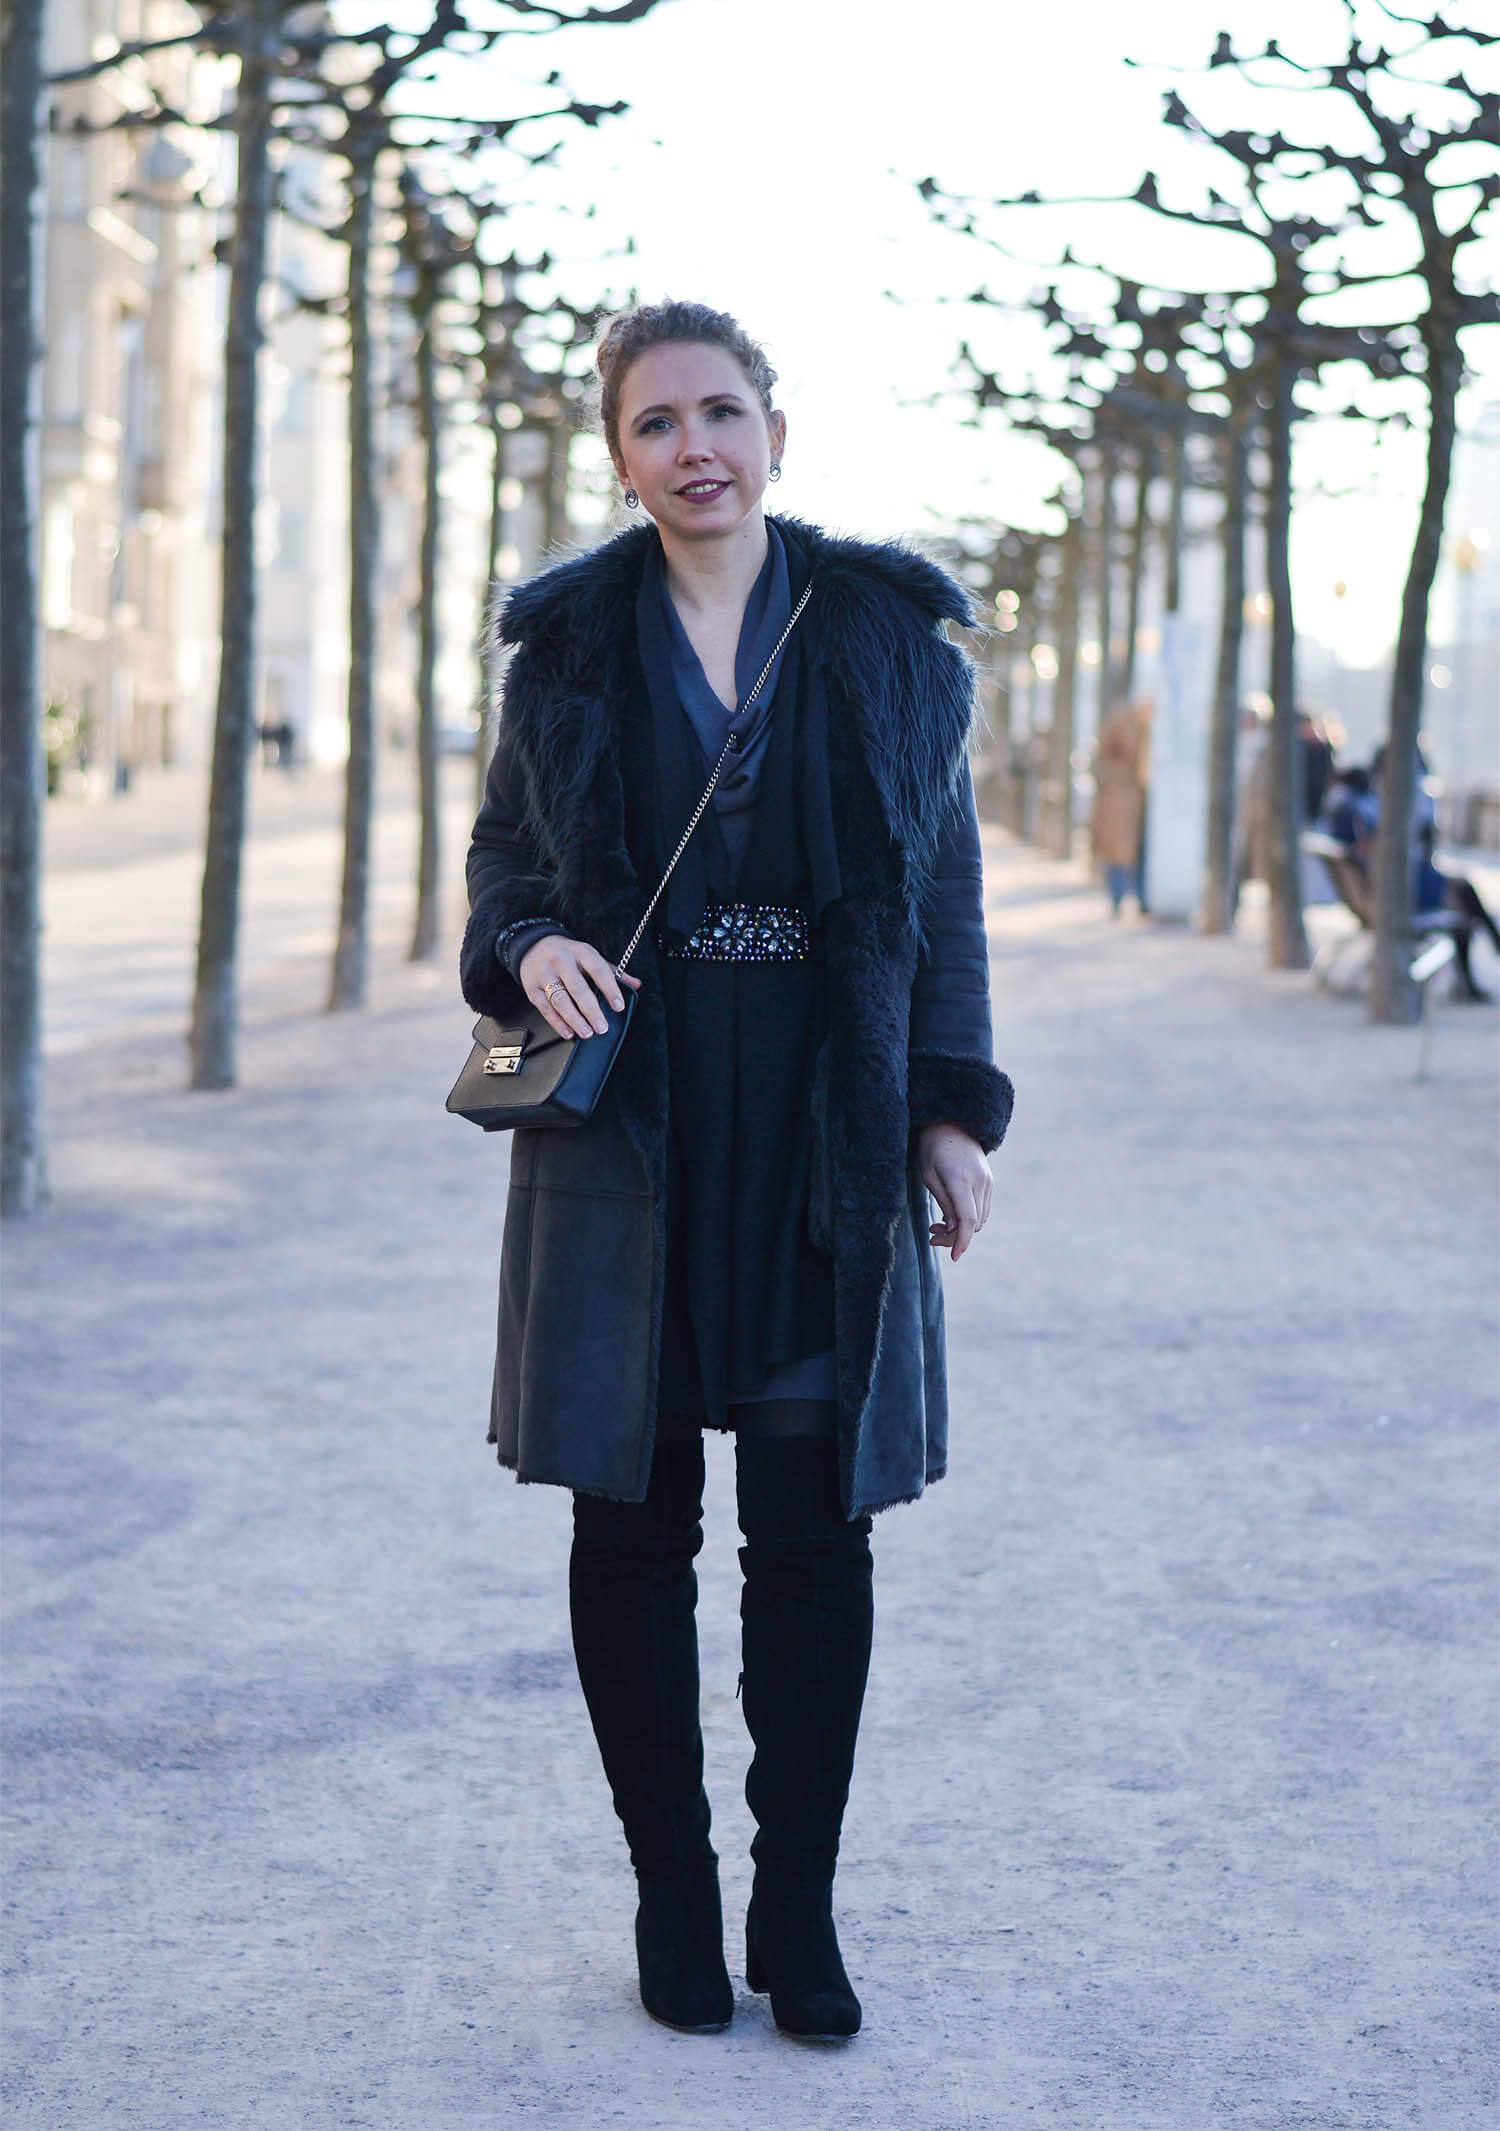 Kationette-fashionblog-Outfit-Shadesofgrey-Shearling-Knit-Overknees-Dusseldorf-curls